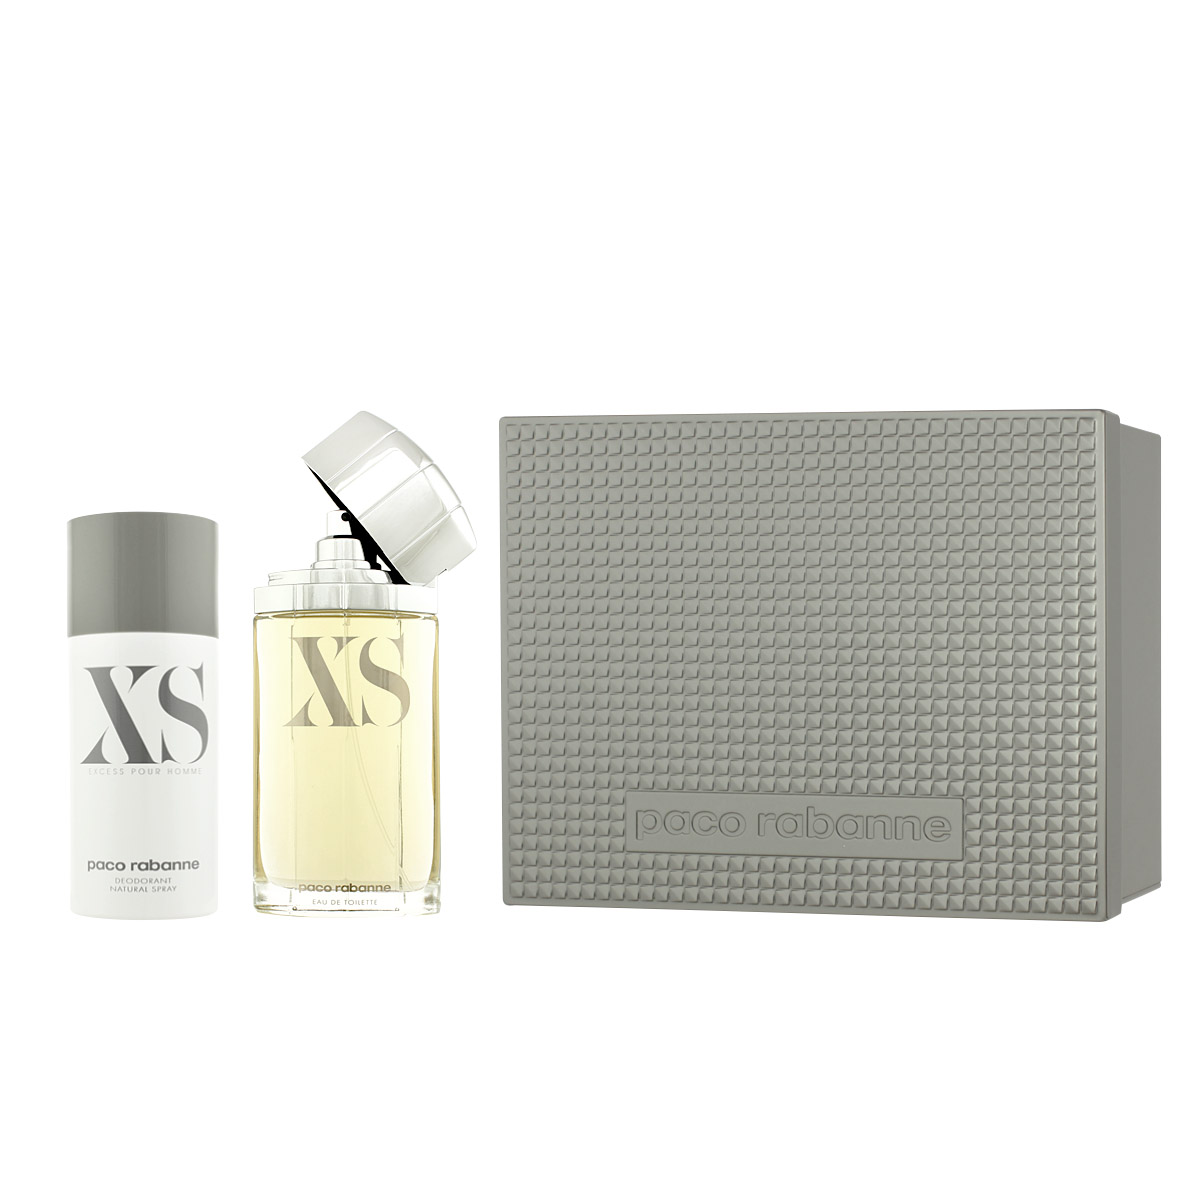 Paco Rabanne XS EDT 100 ml + DEO ve spreji 150 ml M